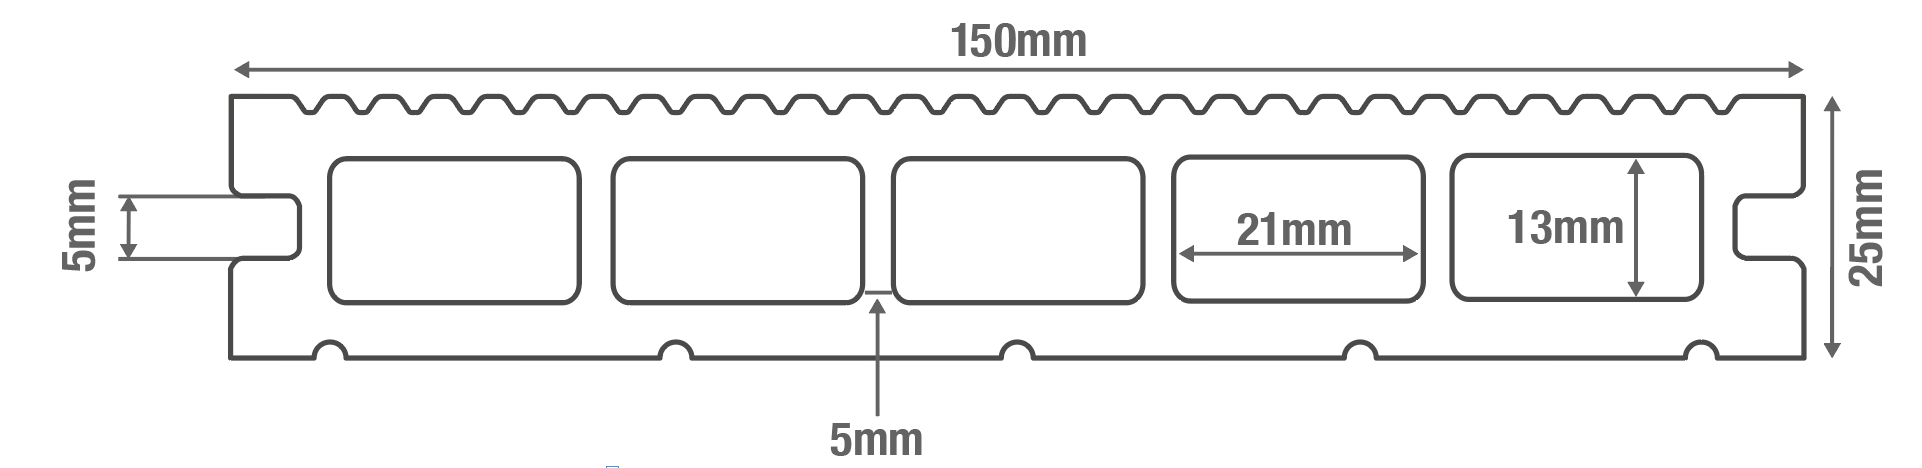 Hollow Commercial Board Diagram